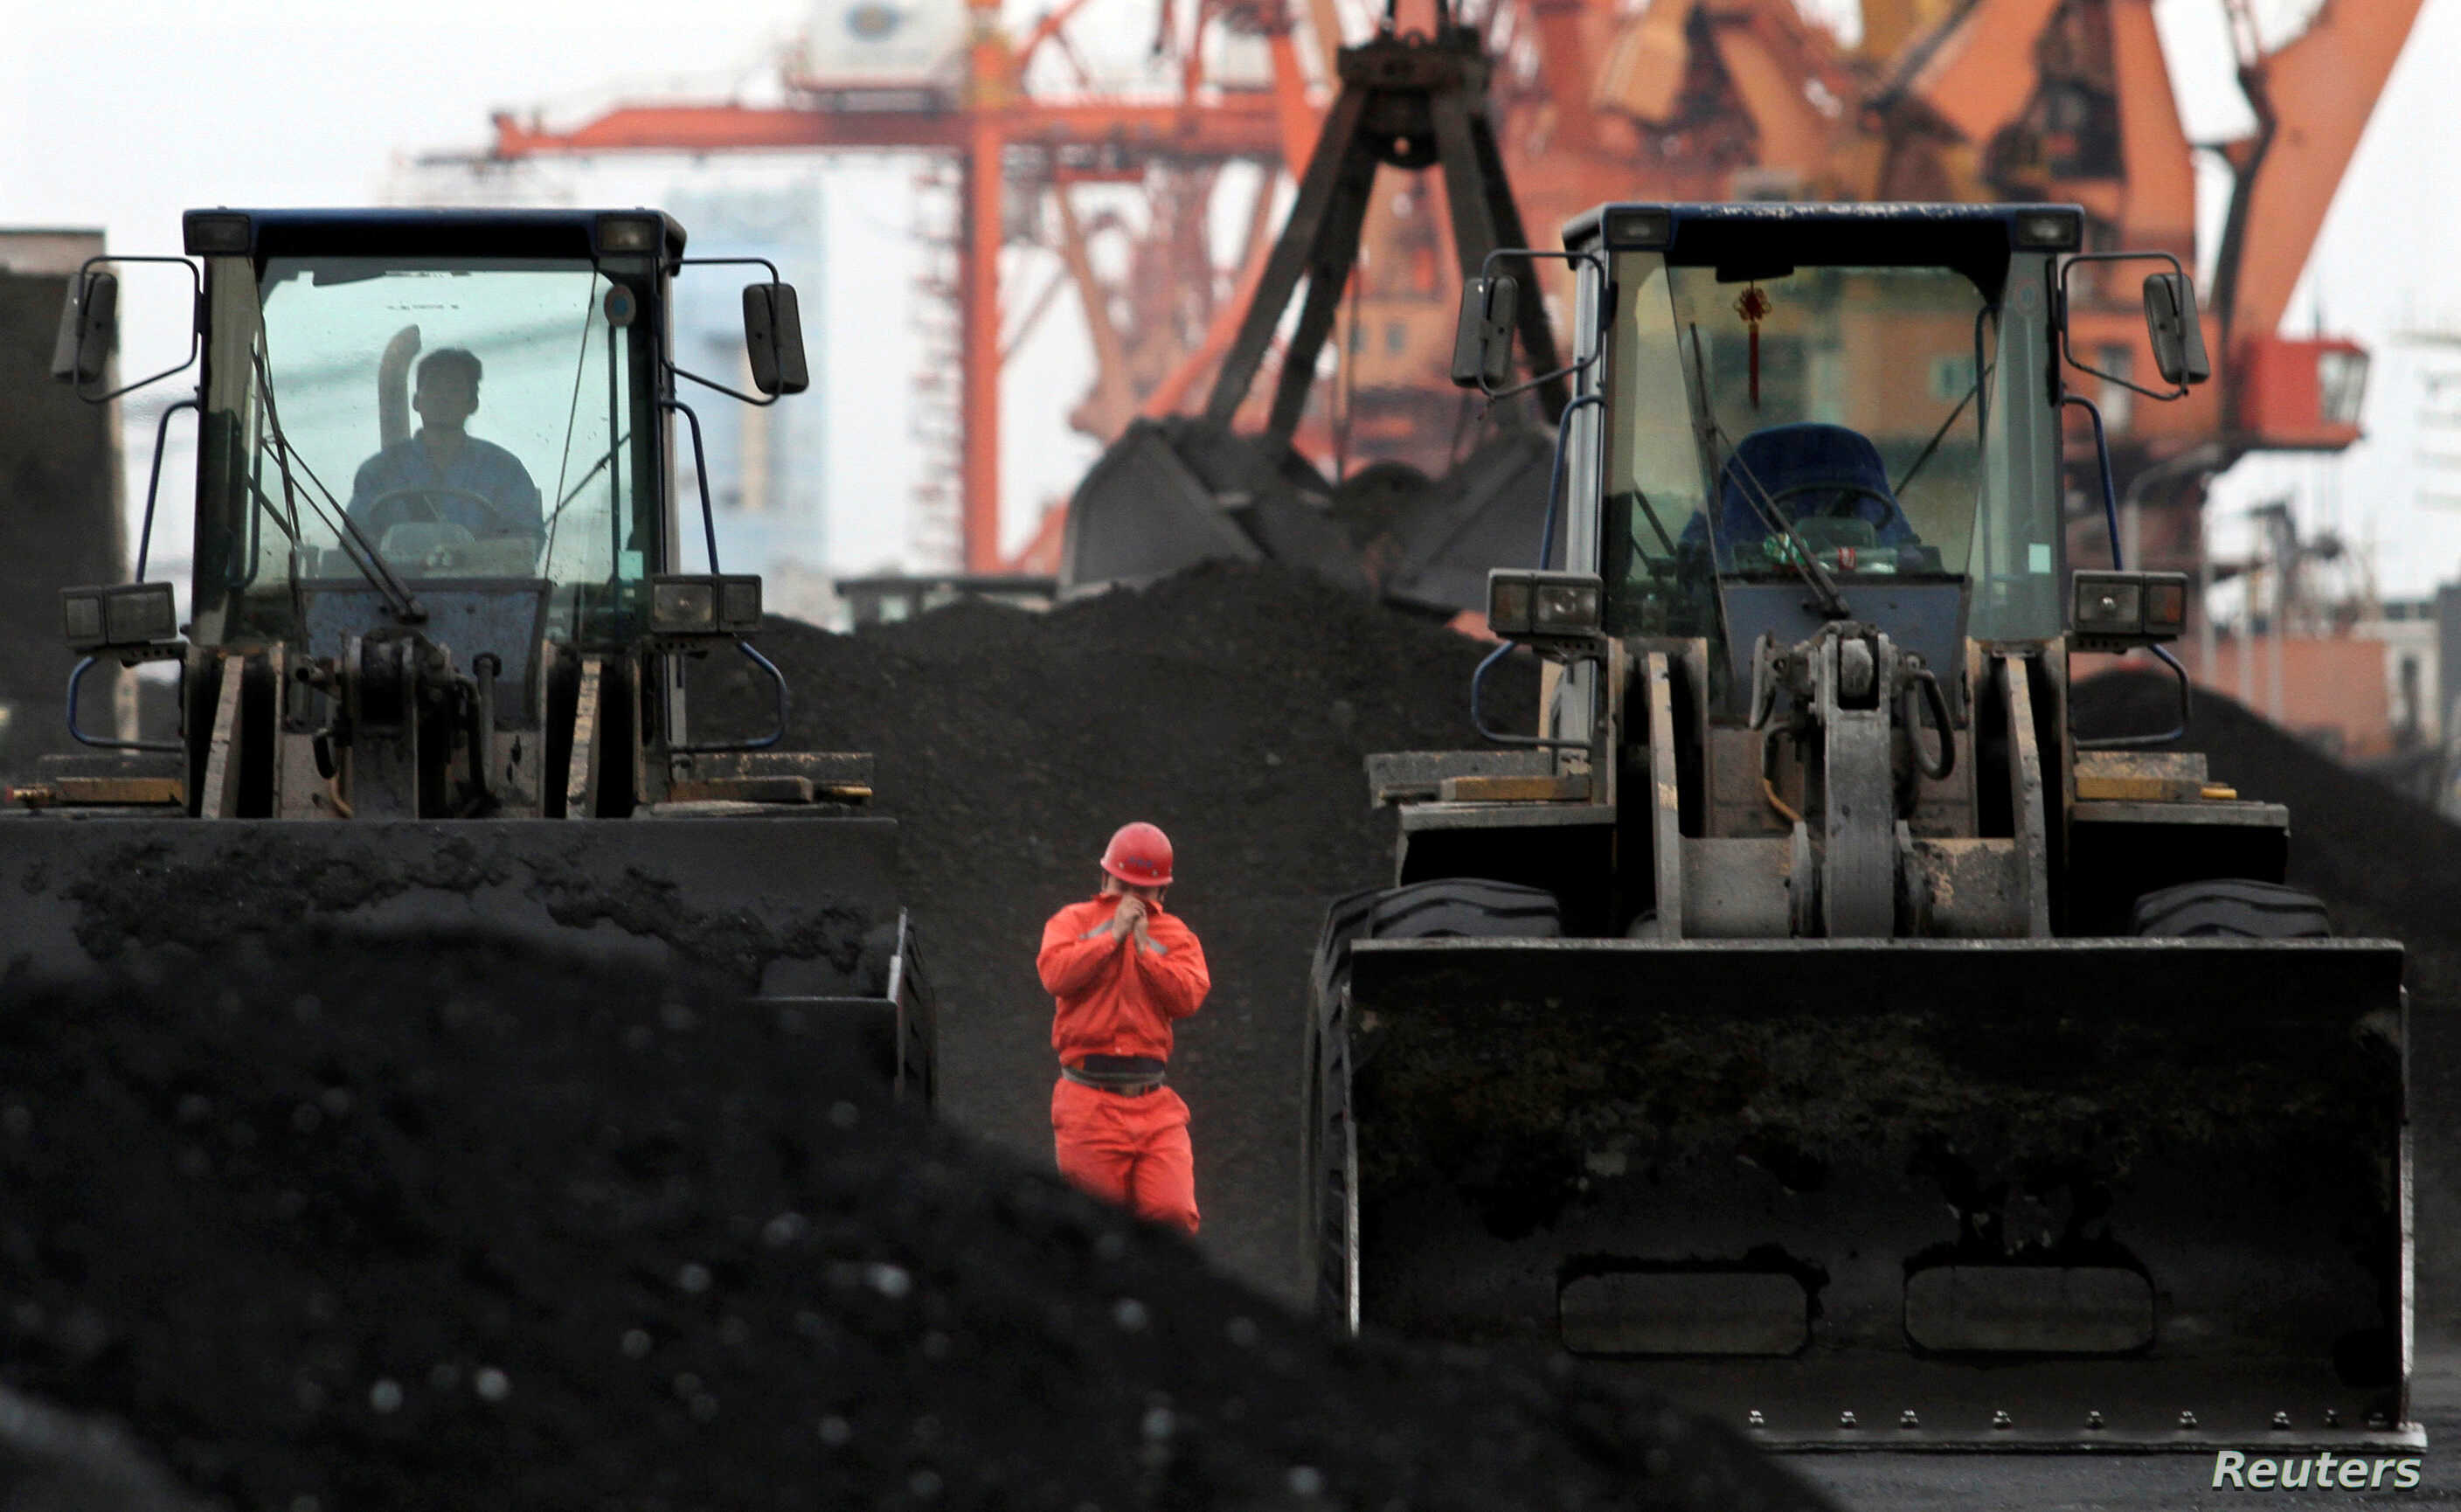 An employee walks between front-end loaders which are used to move coal imported from North Korea at Dandong port in the Chinese border city of Dandong, Dec. 7, 2010.